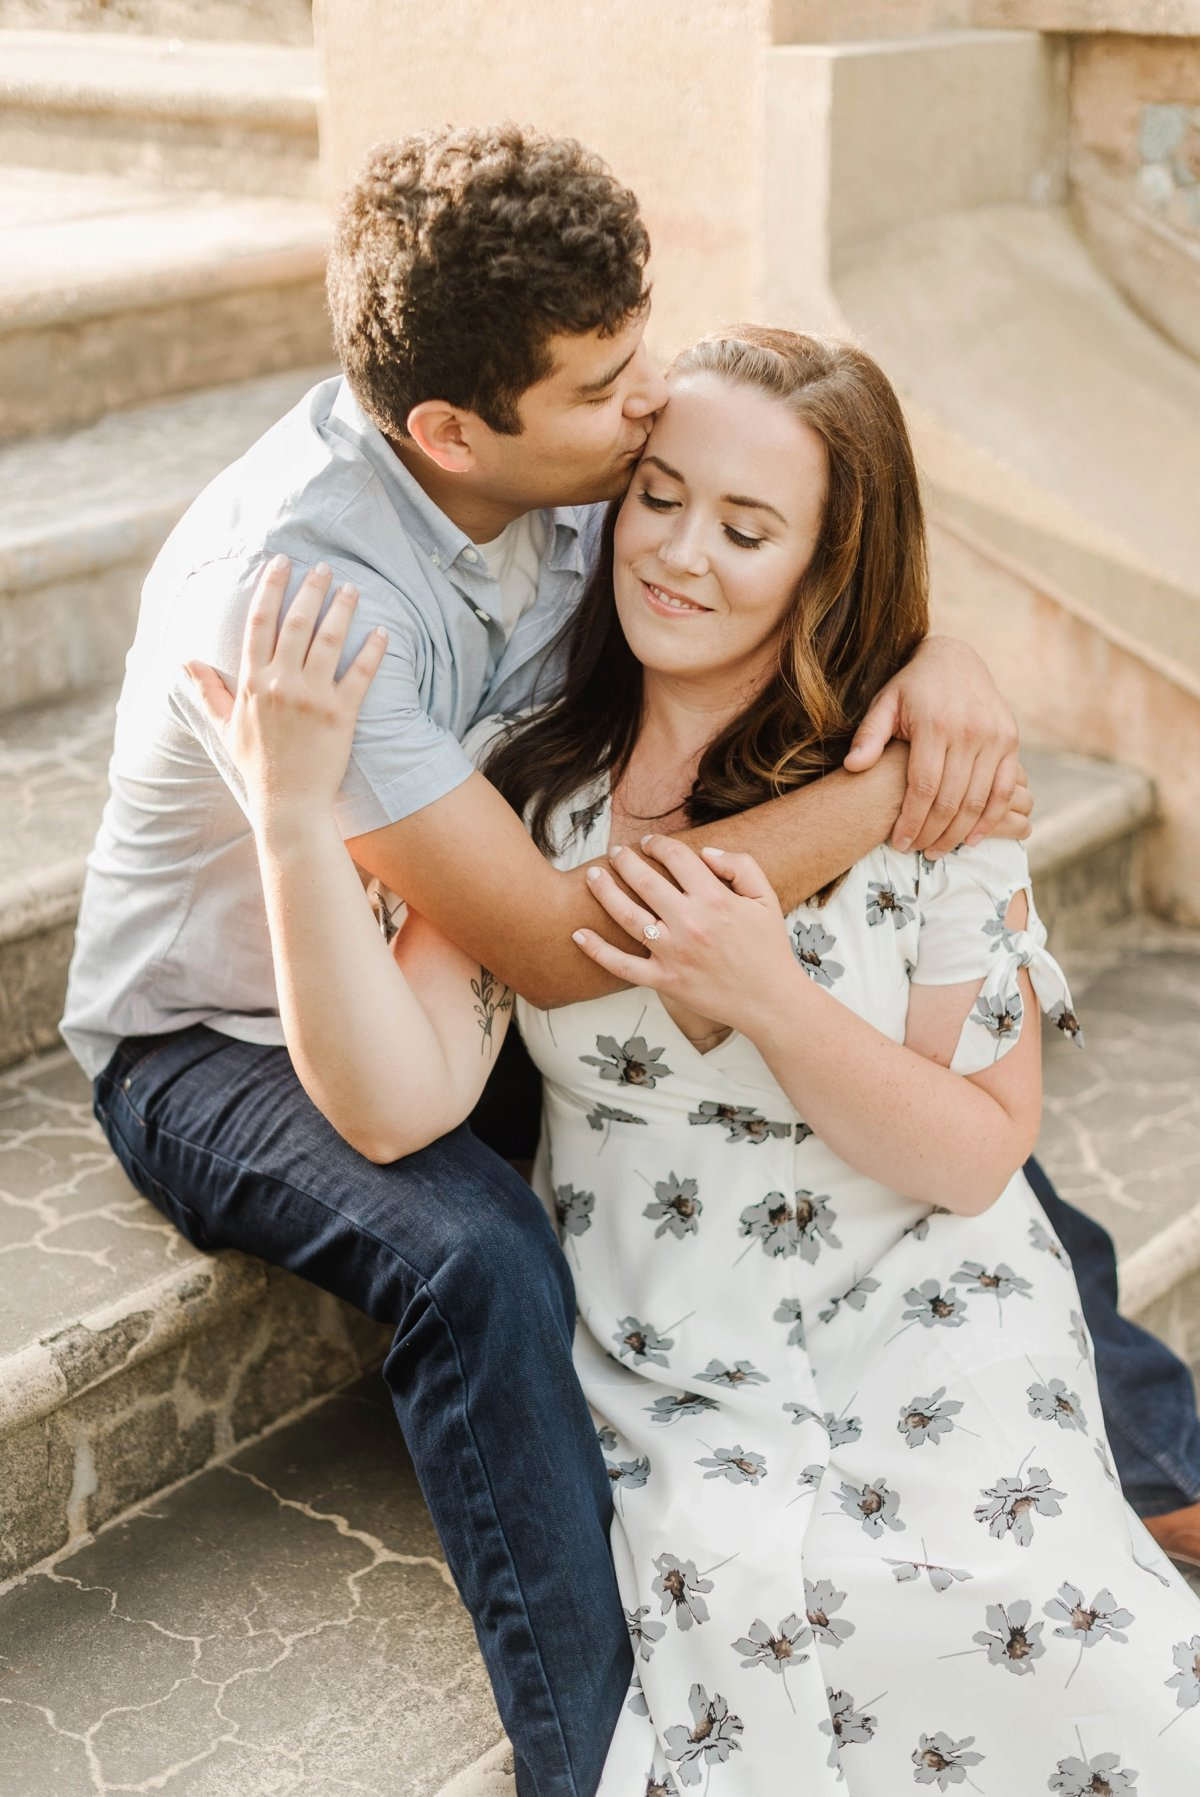 crane-estate-engagement-session-boston-wedding-photographer-photo_0004